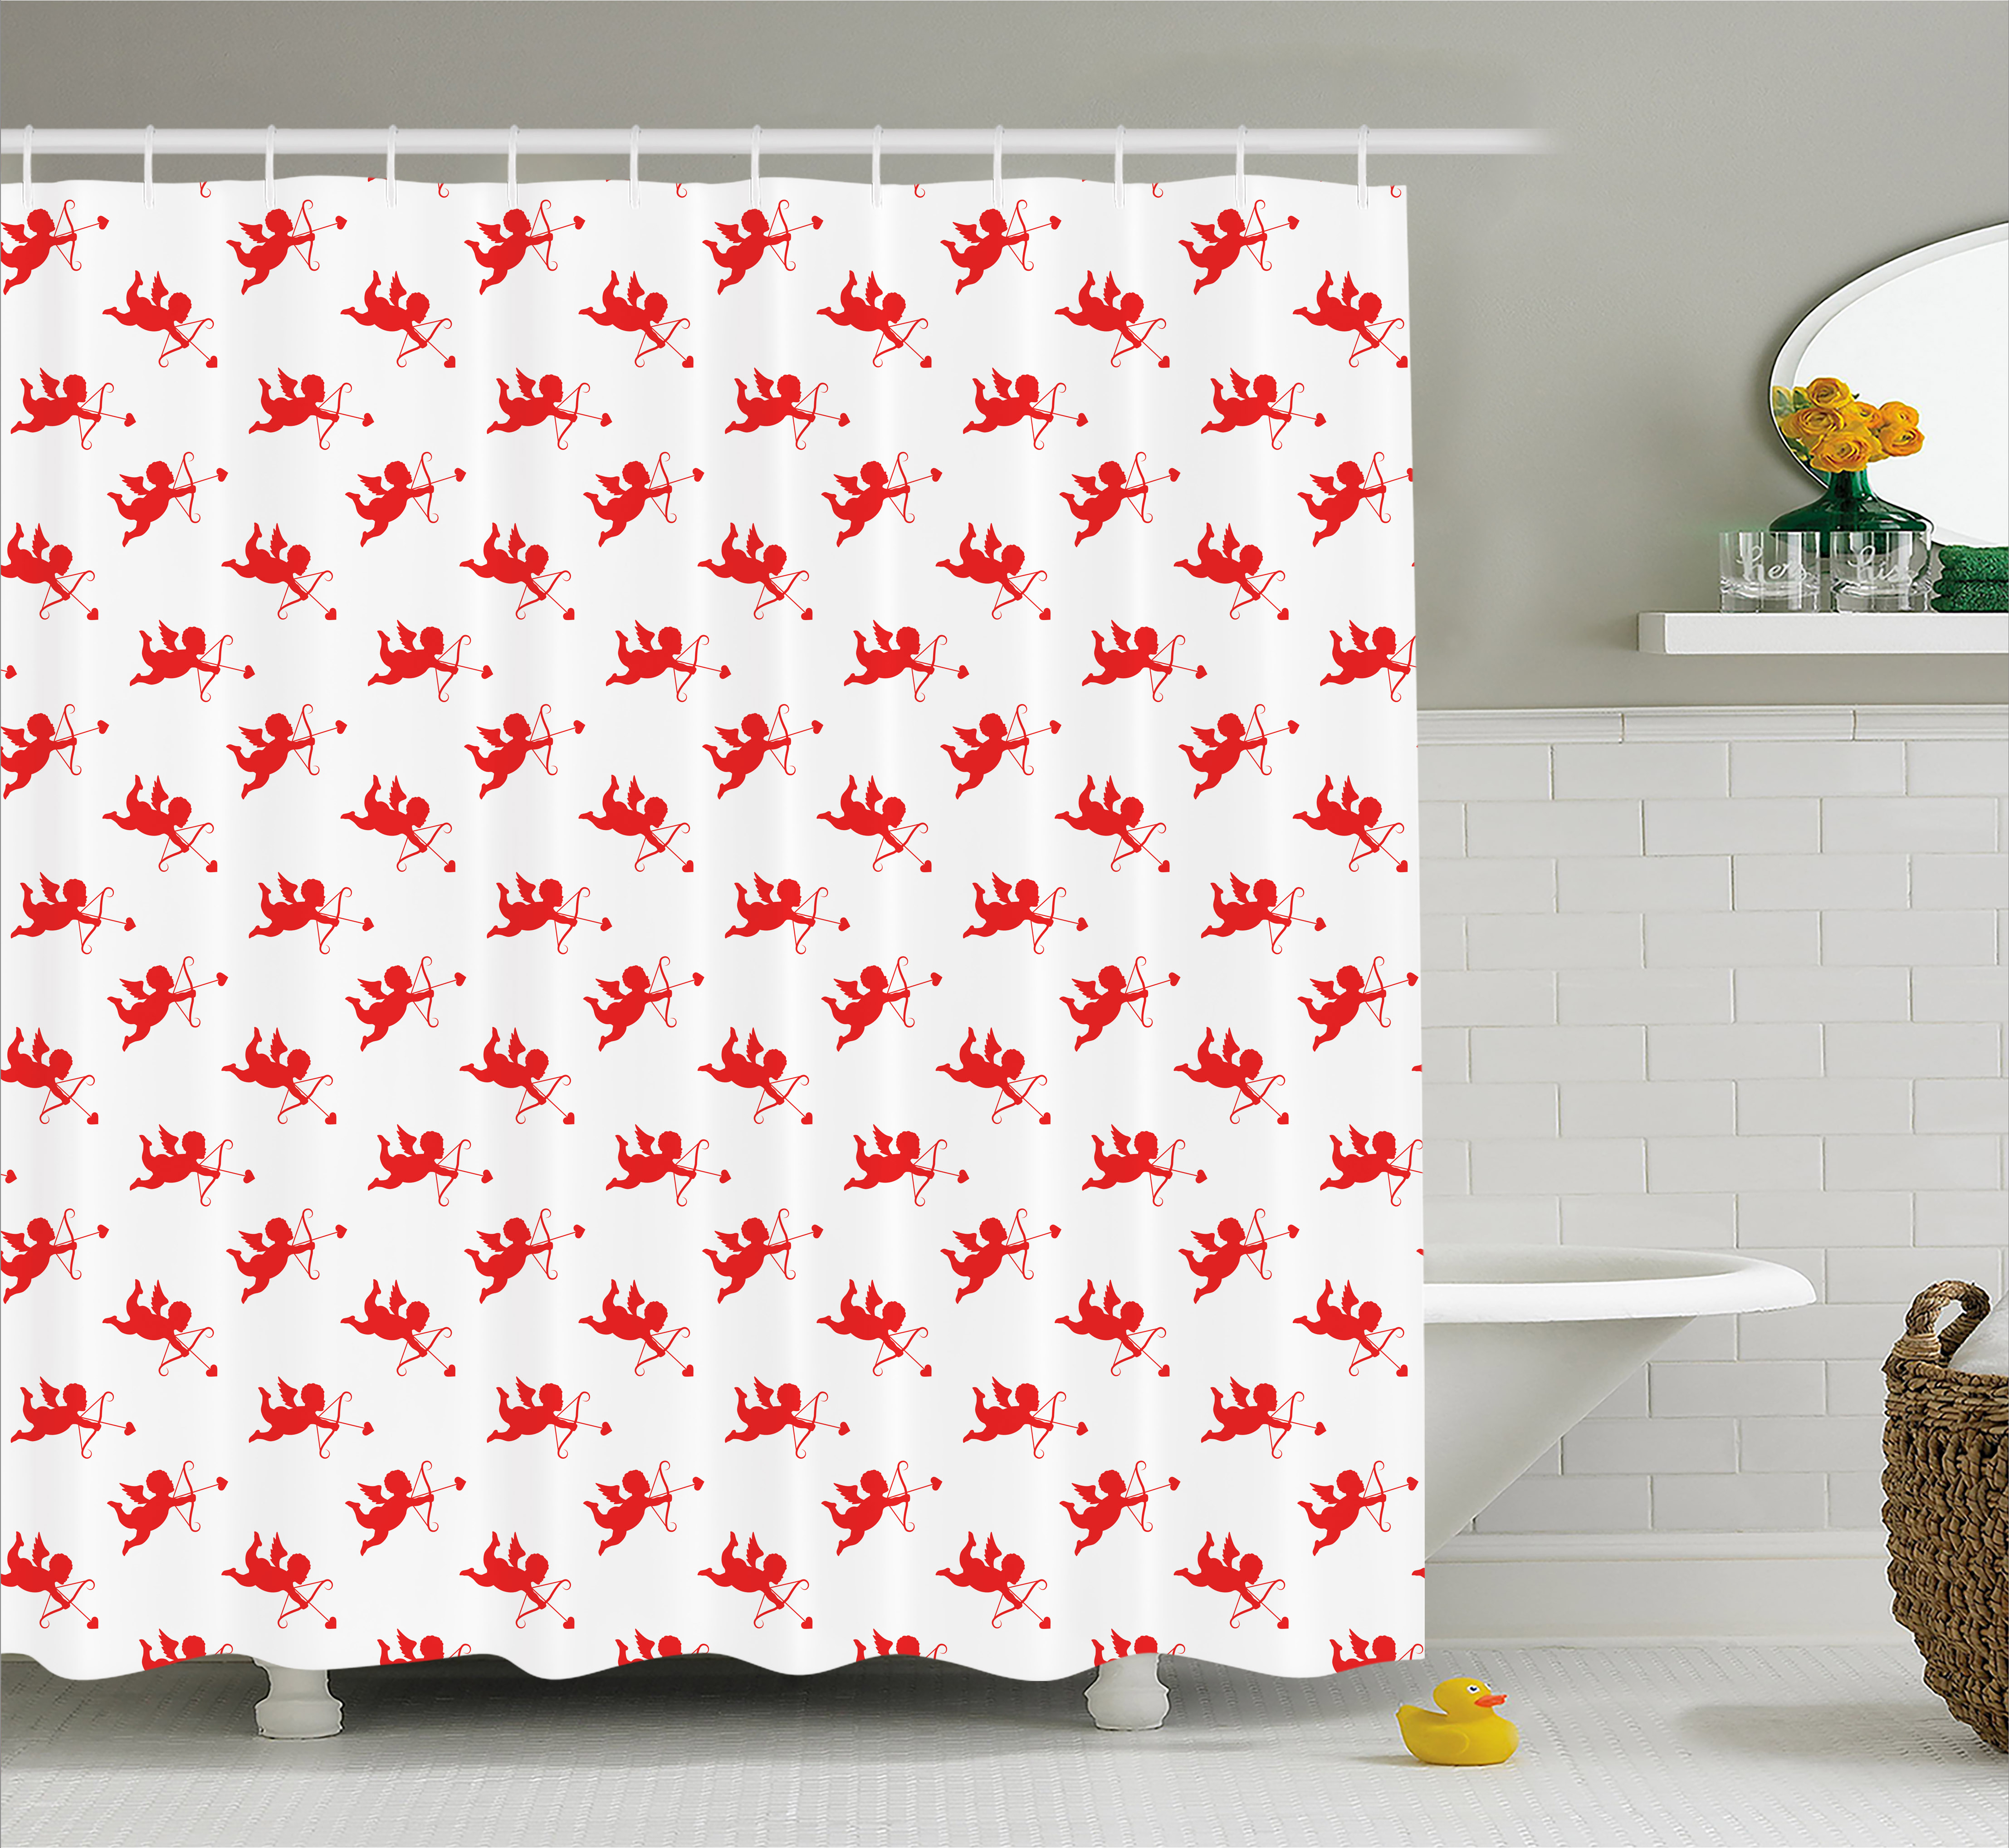 Angel Shower Curtain, Valentine Day Motif Sweet Kiss Love Icons Engagement Birsthday Affection Modern Art, Fabric Bathroom Set with Hooks, 69W X 84L Inches Extra Long, Red White, by Ambesonne